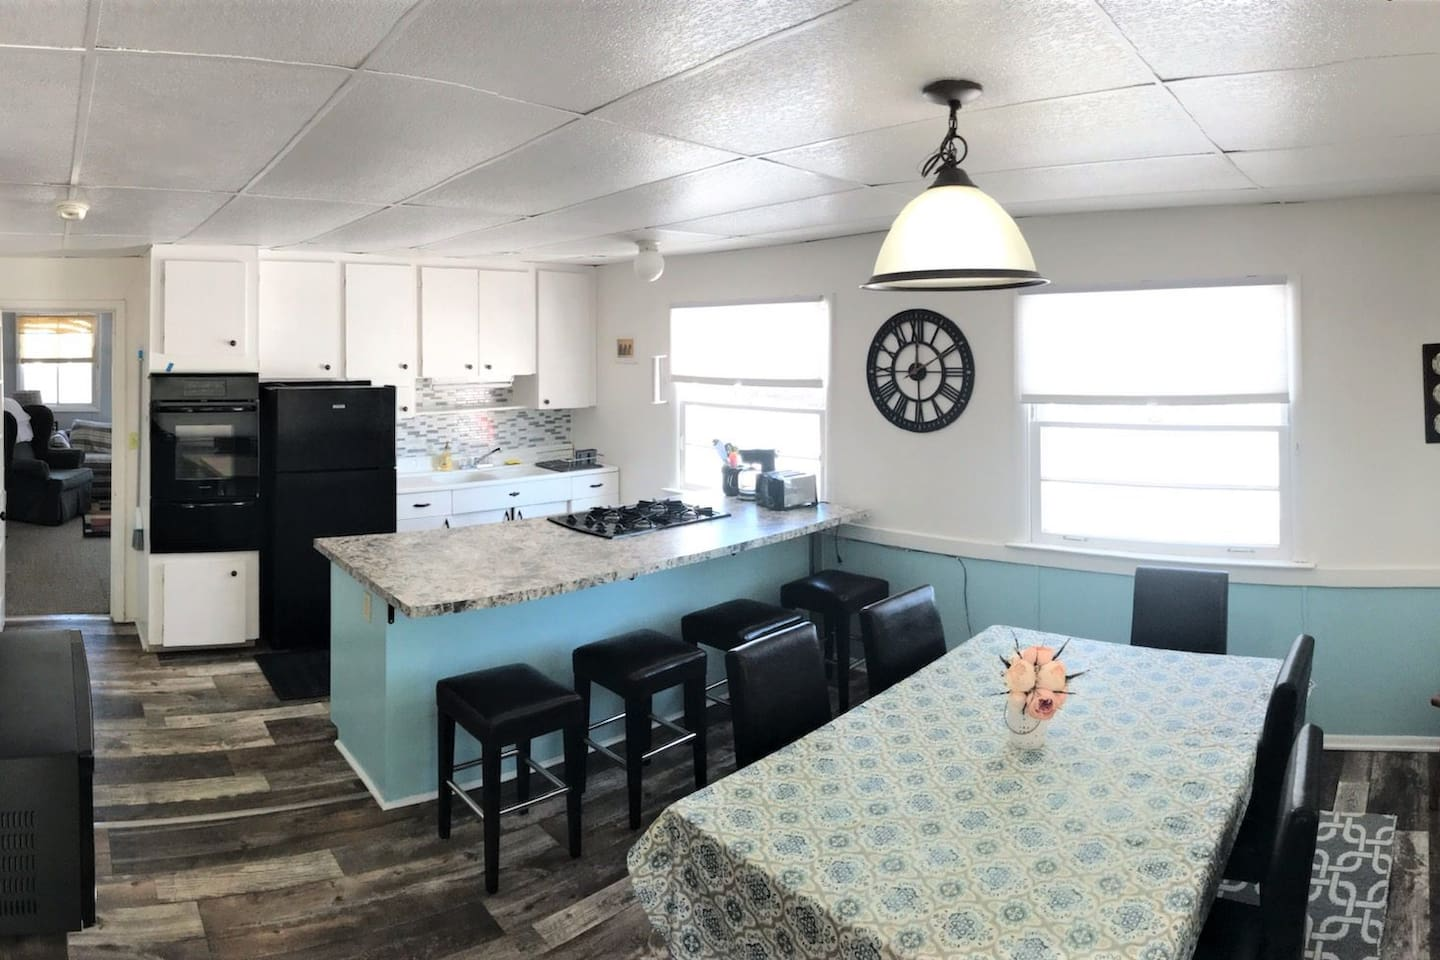 The Timeaway kitchen has a new built in oven, new stovetop, new refrigerator, countertop and backsplash.  There is lots of room to cook, play games or do a puzzle.  There is a window air conditioner for those humid days.  Lake Huron view!